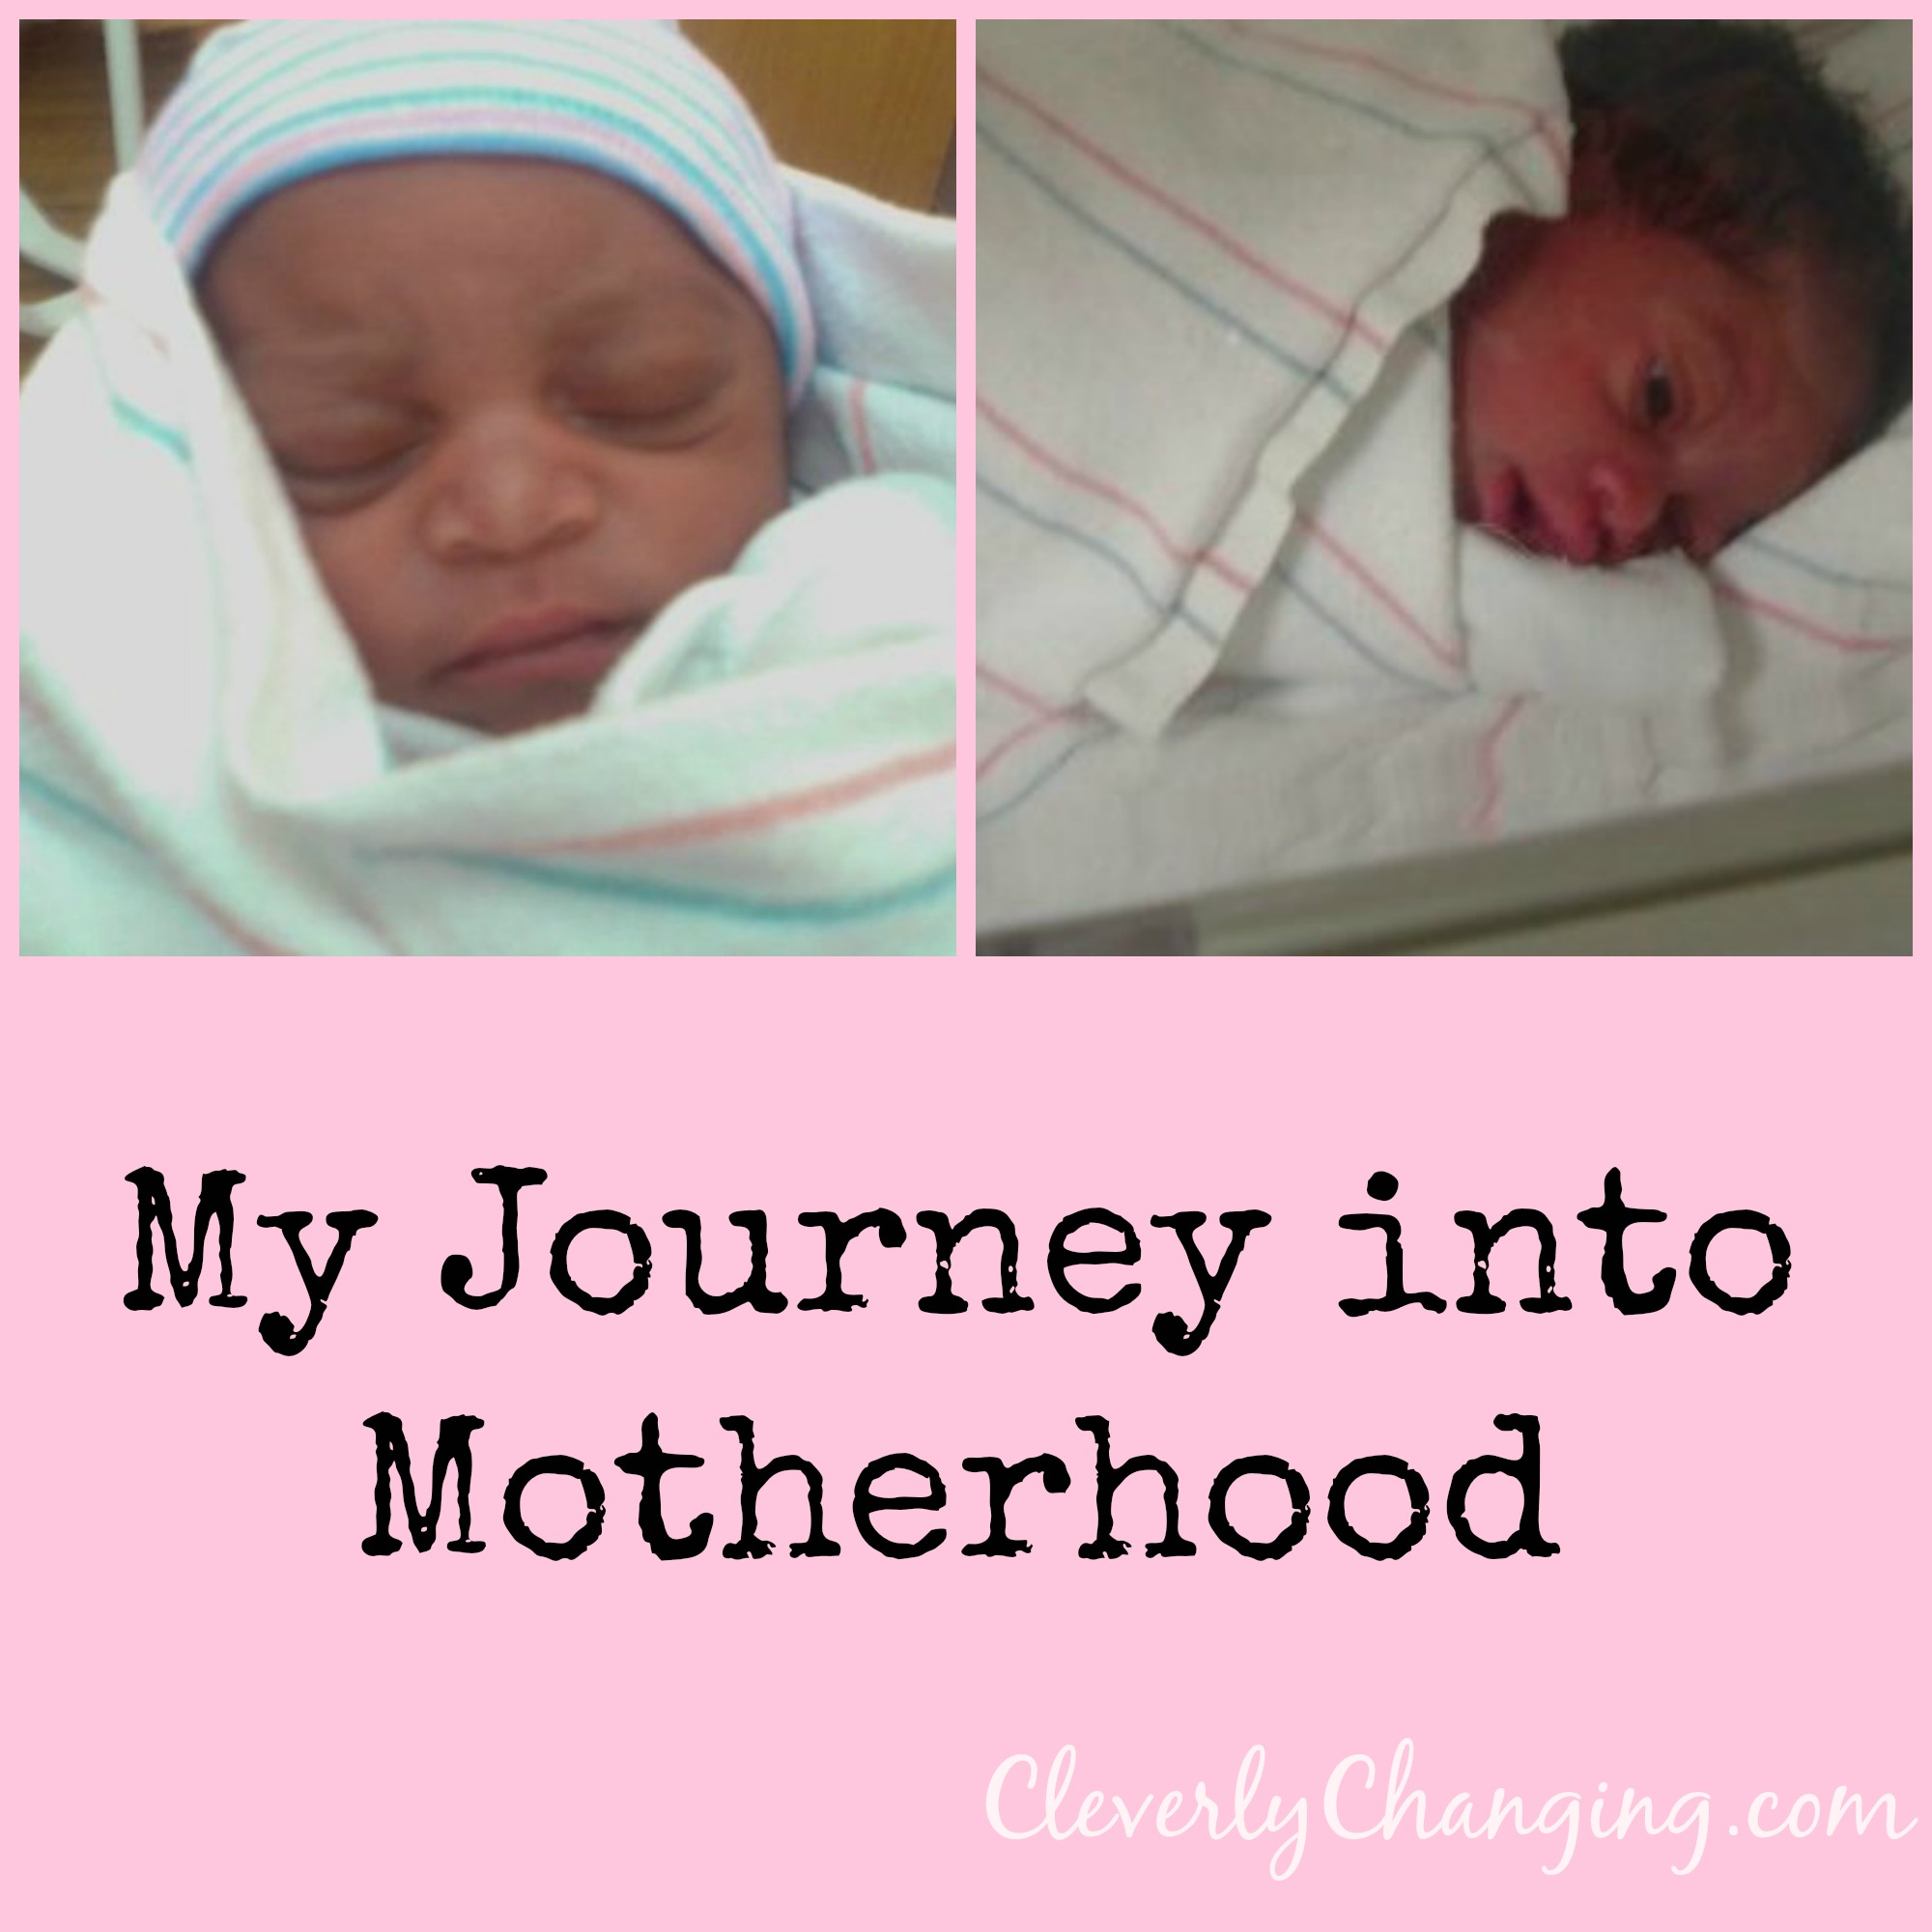 My Birth Story: The Best Day of my Life - Cleverly Changing